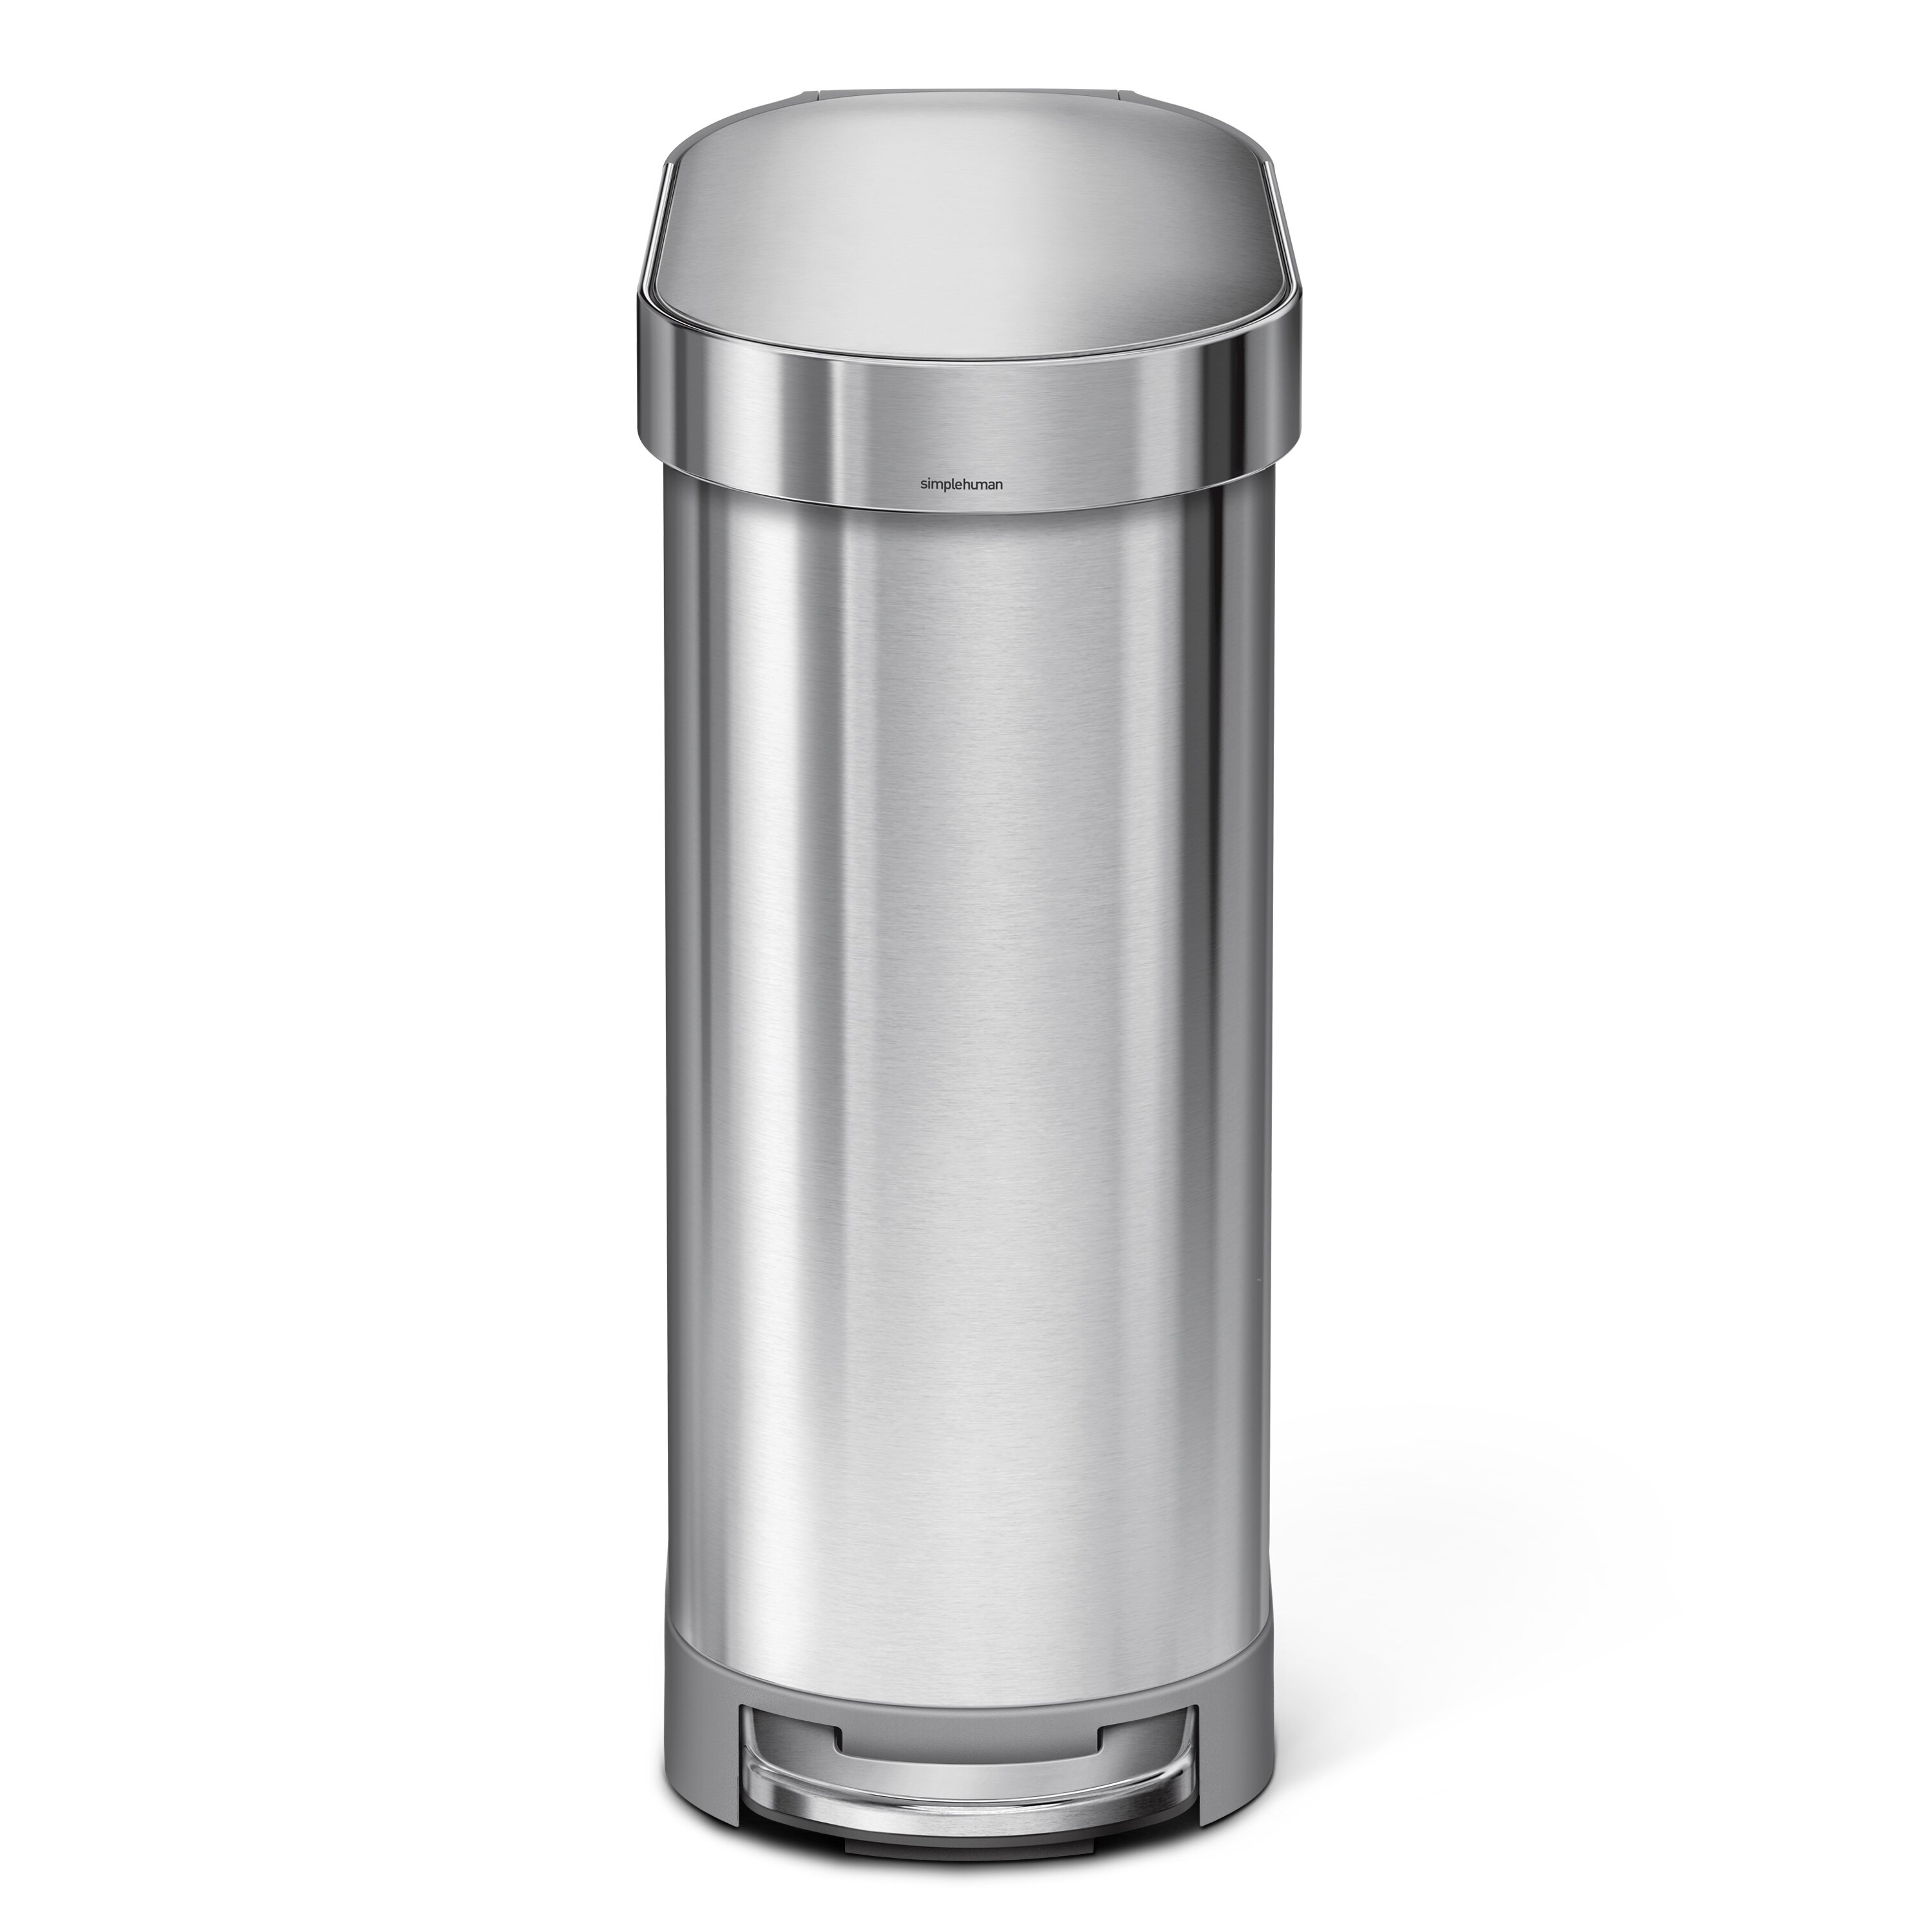 45 Liter Slim Step Stainless Steel Trash Can With Liner Rim Rose Reviews Joss Main